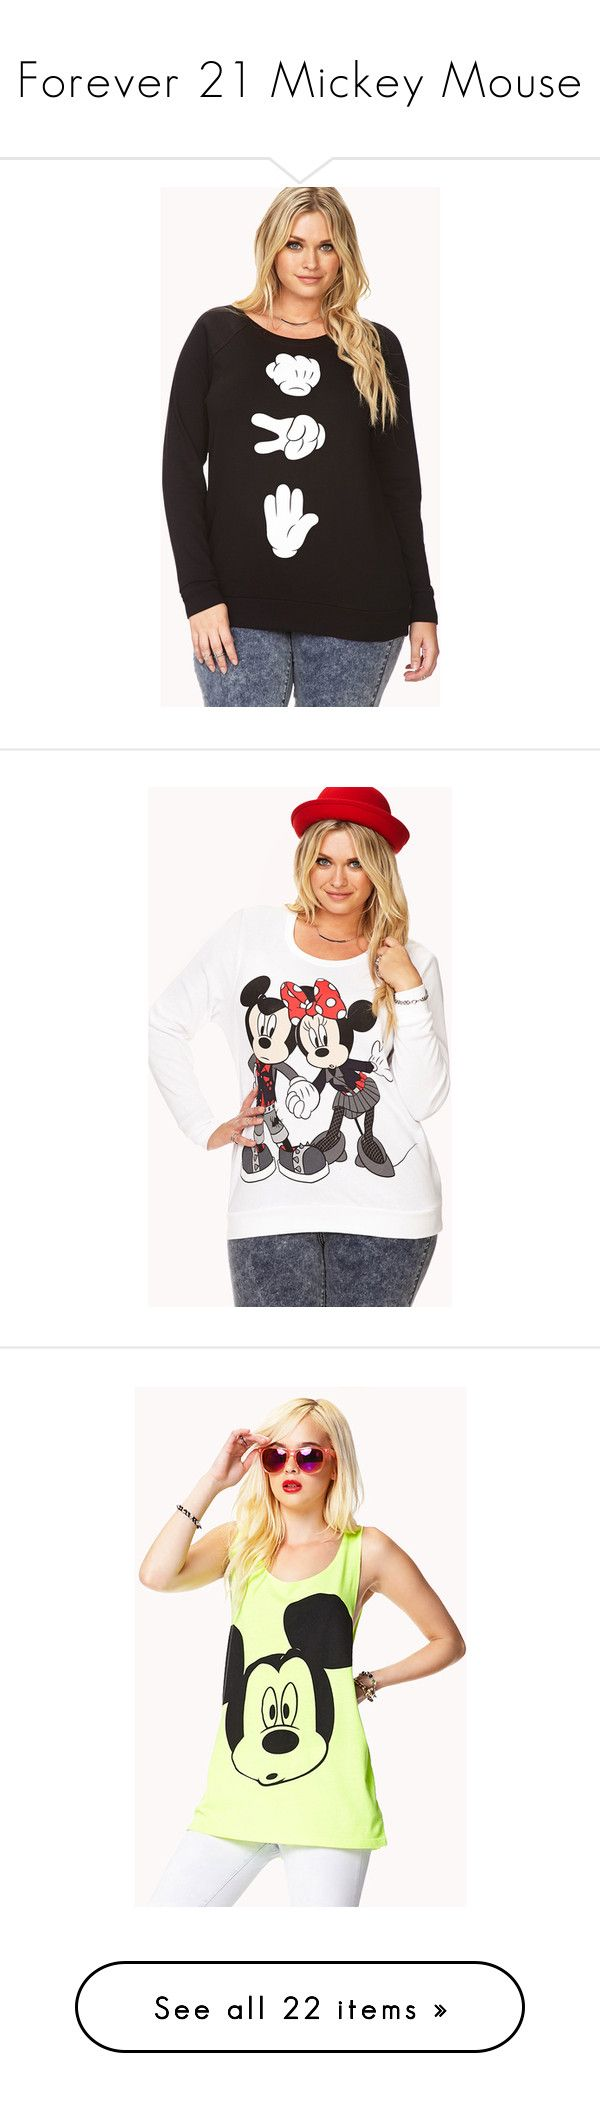 """""""Forever 21 Mickey Mouse"""" by luni-salazar ❤ liked on Polyvore featuring plus size women's fashion, plus size clothing, plus size tops, plus size hoodies, plus size sweatshirts, plus size, graphic tops, plus size womens sweatshirts, long tops and forever 21 sweatshirt"""